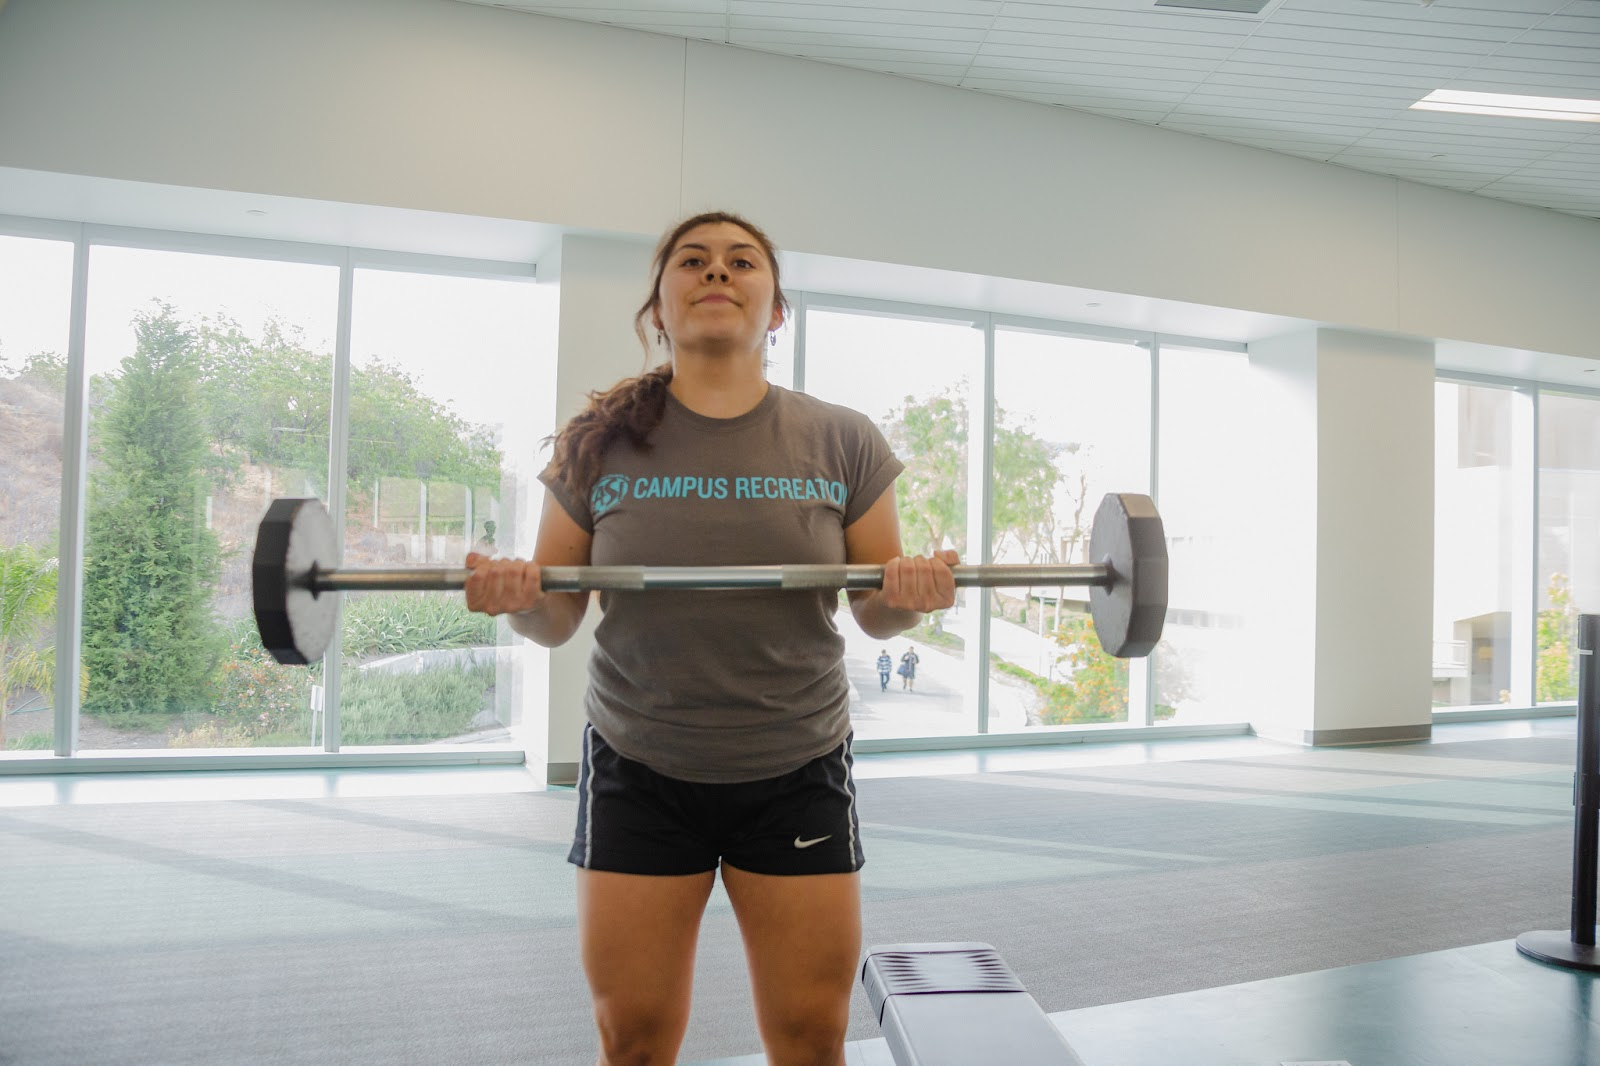 A focused Arellano Rodriguez lifting weights